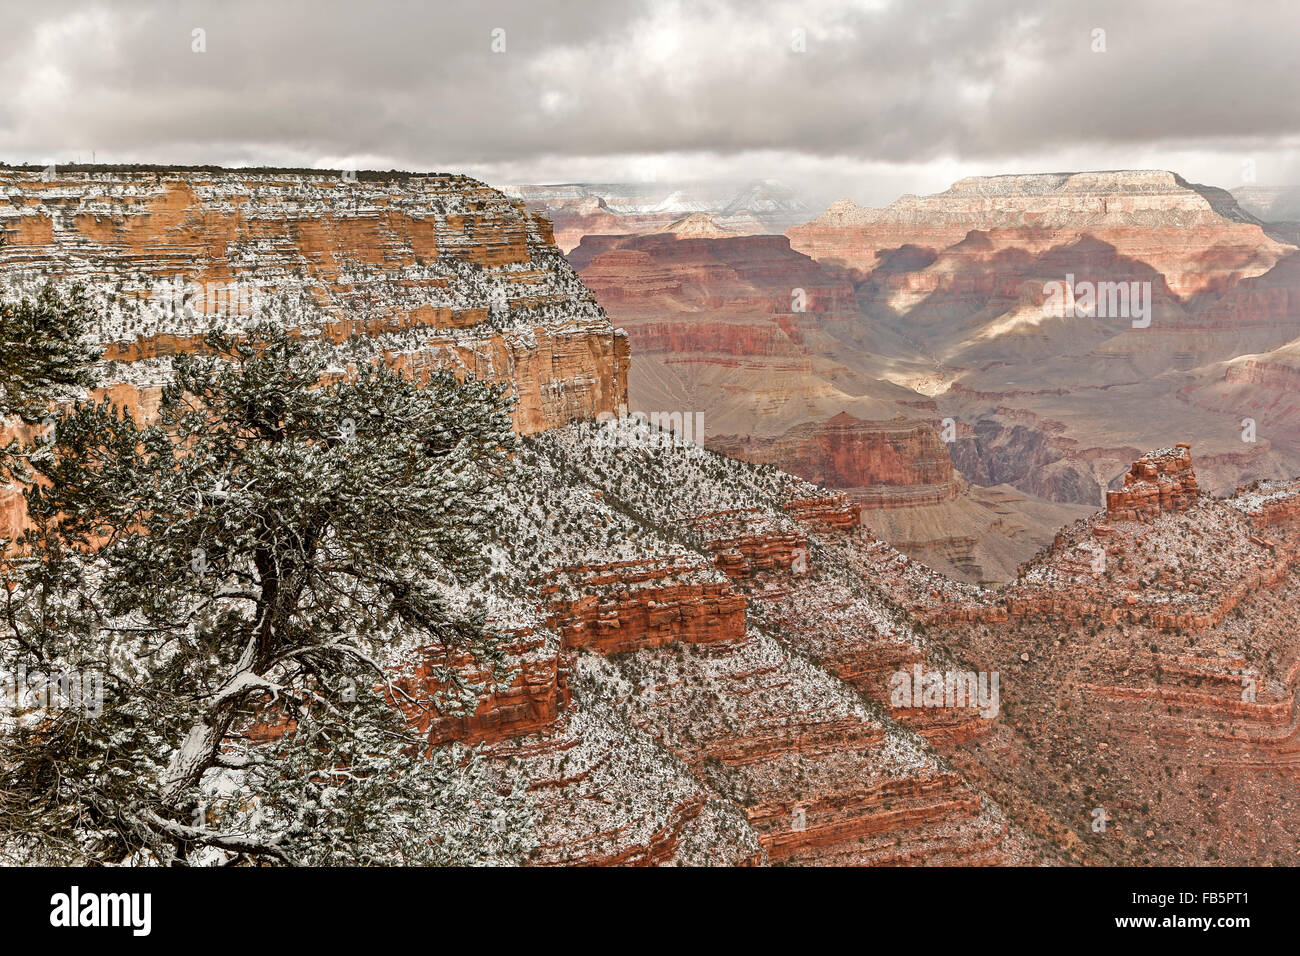 Snow-covered bluffs and canyons, from Rim Trail near the Village, Grand Canyon National Park, Arizona USA - Stock Image